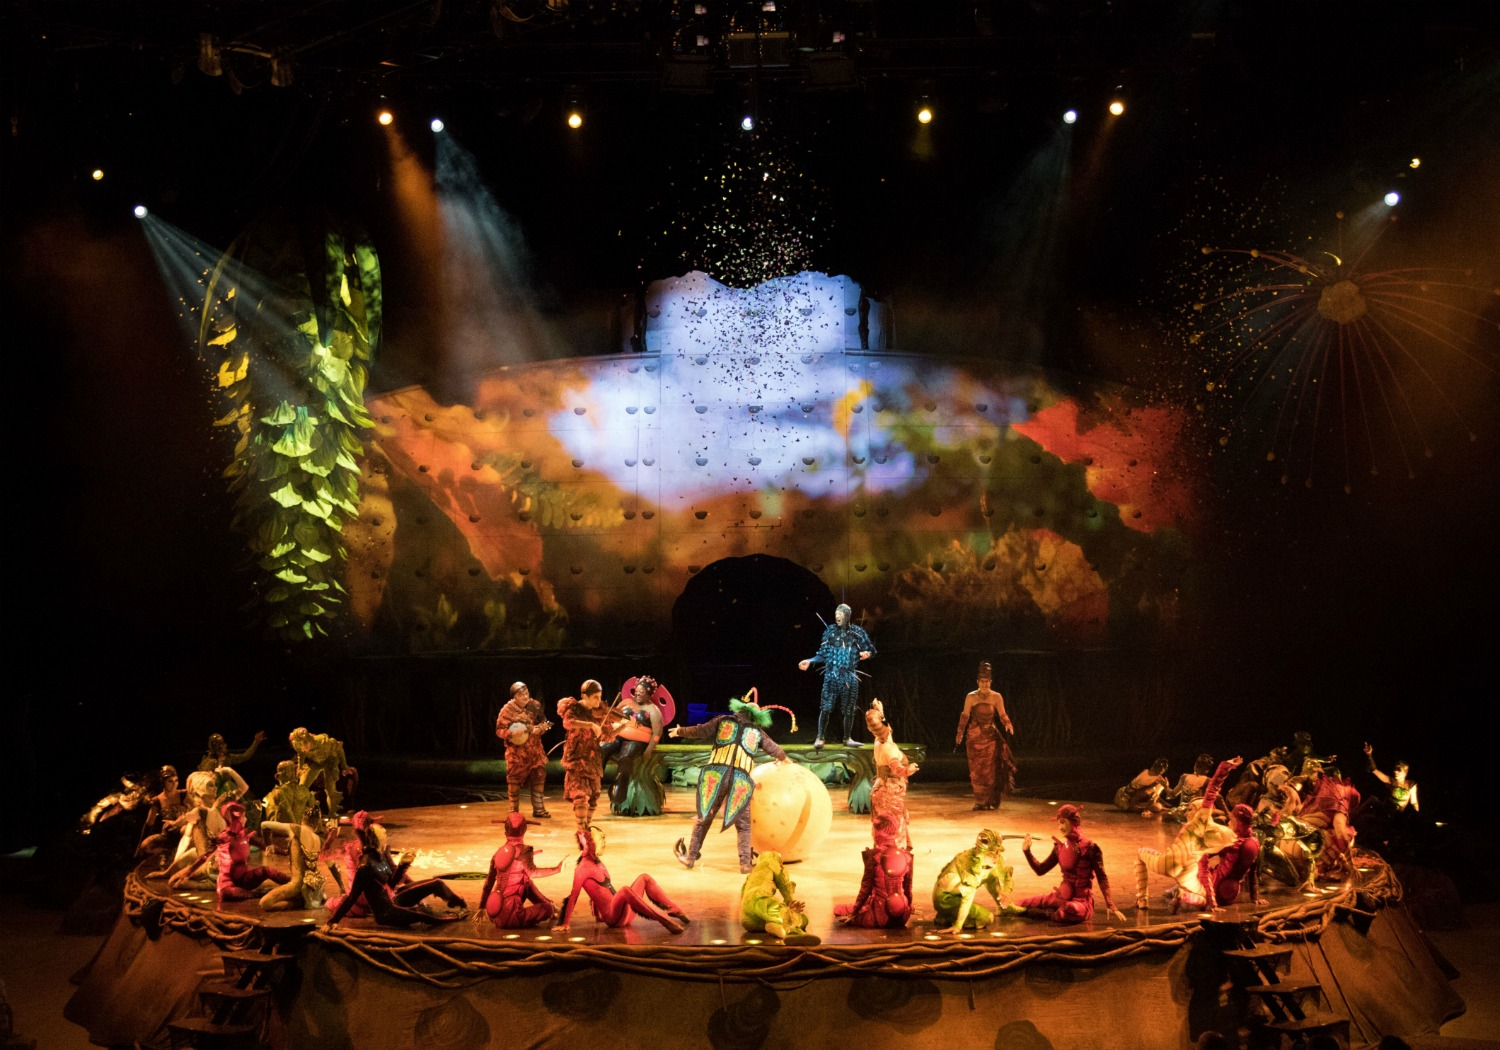 Ad Cirque du Soleil Crystal Miami Tickets. Order American Airlines Arena Resale Tickets. View Huge Inventory with Interactive Seat Maps, Great Customer Service & Secure Checkout.